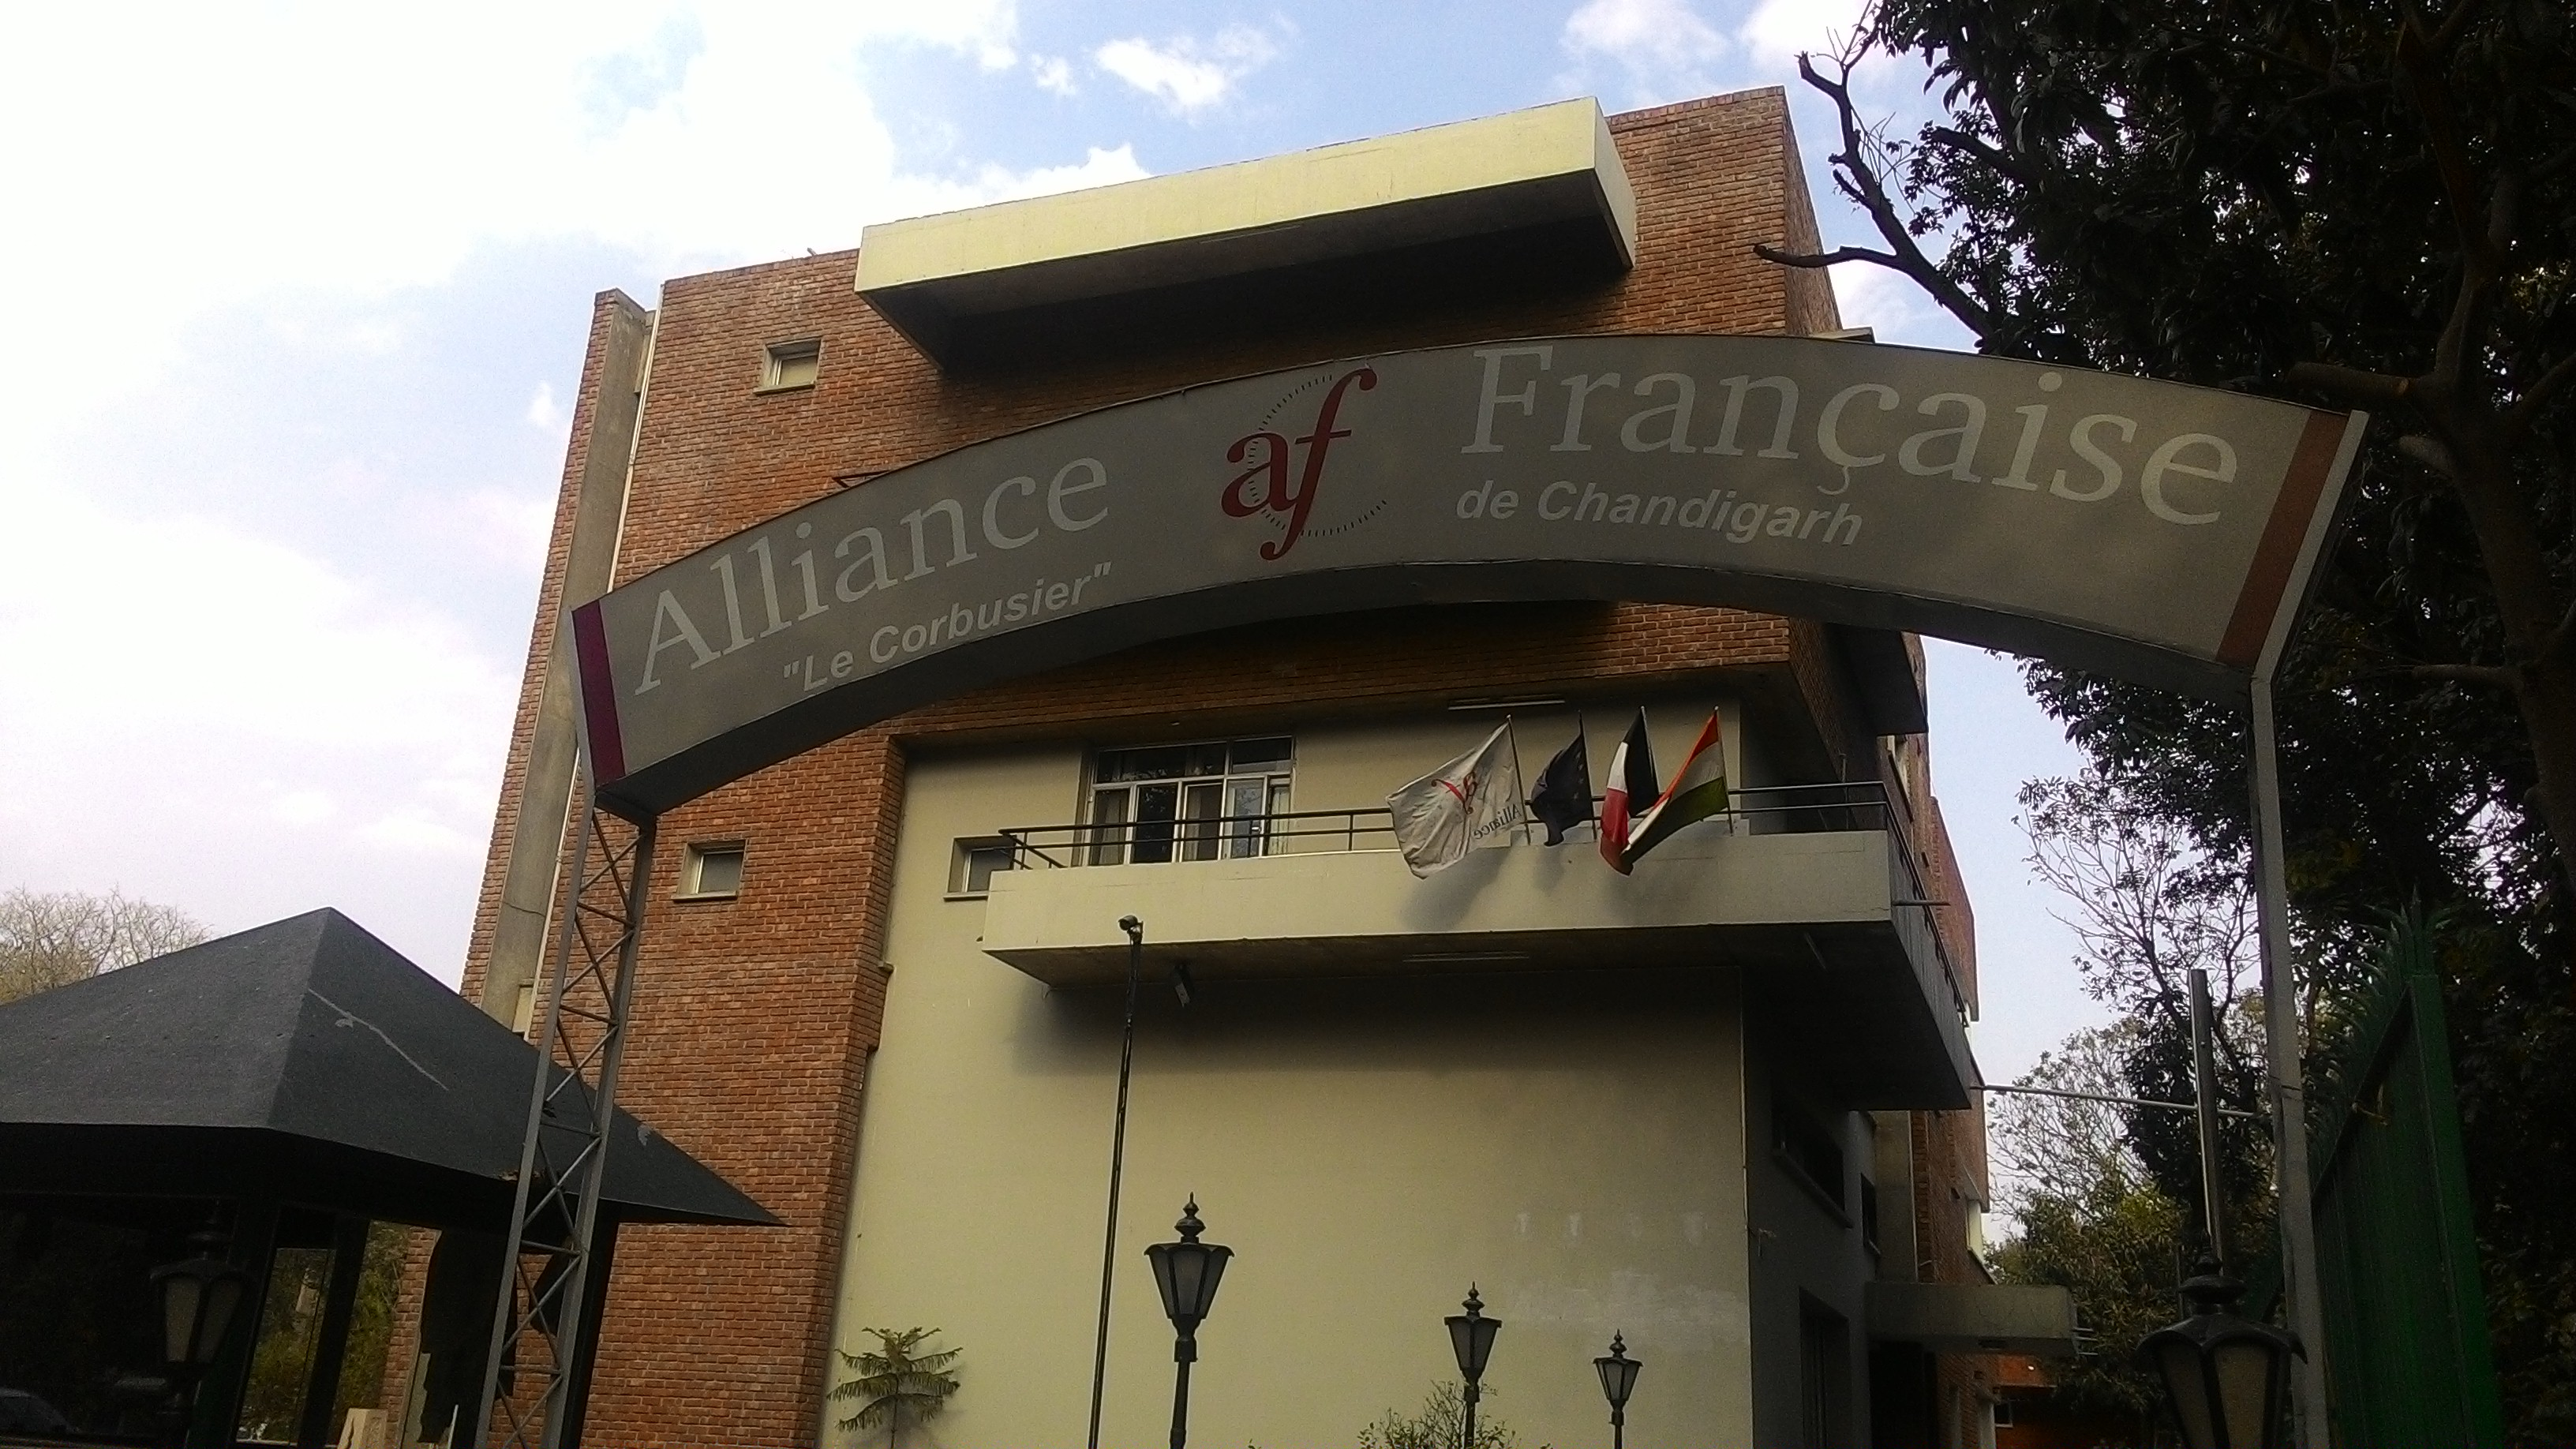 Alliance Francaise de chandigarh